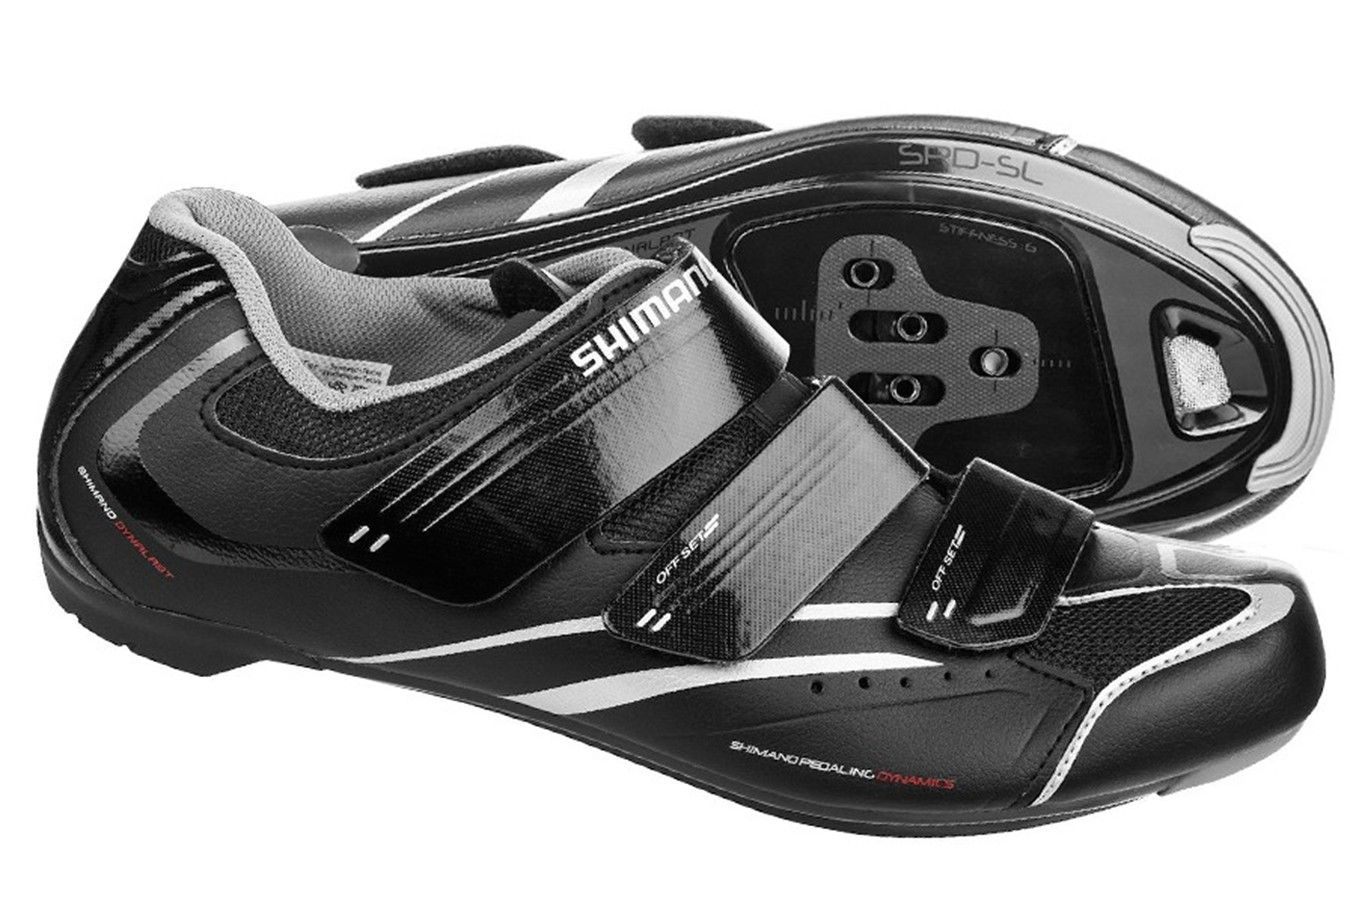 SAPATILHA SPEED/ROAD SH-R078L - SHIMANO